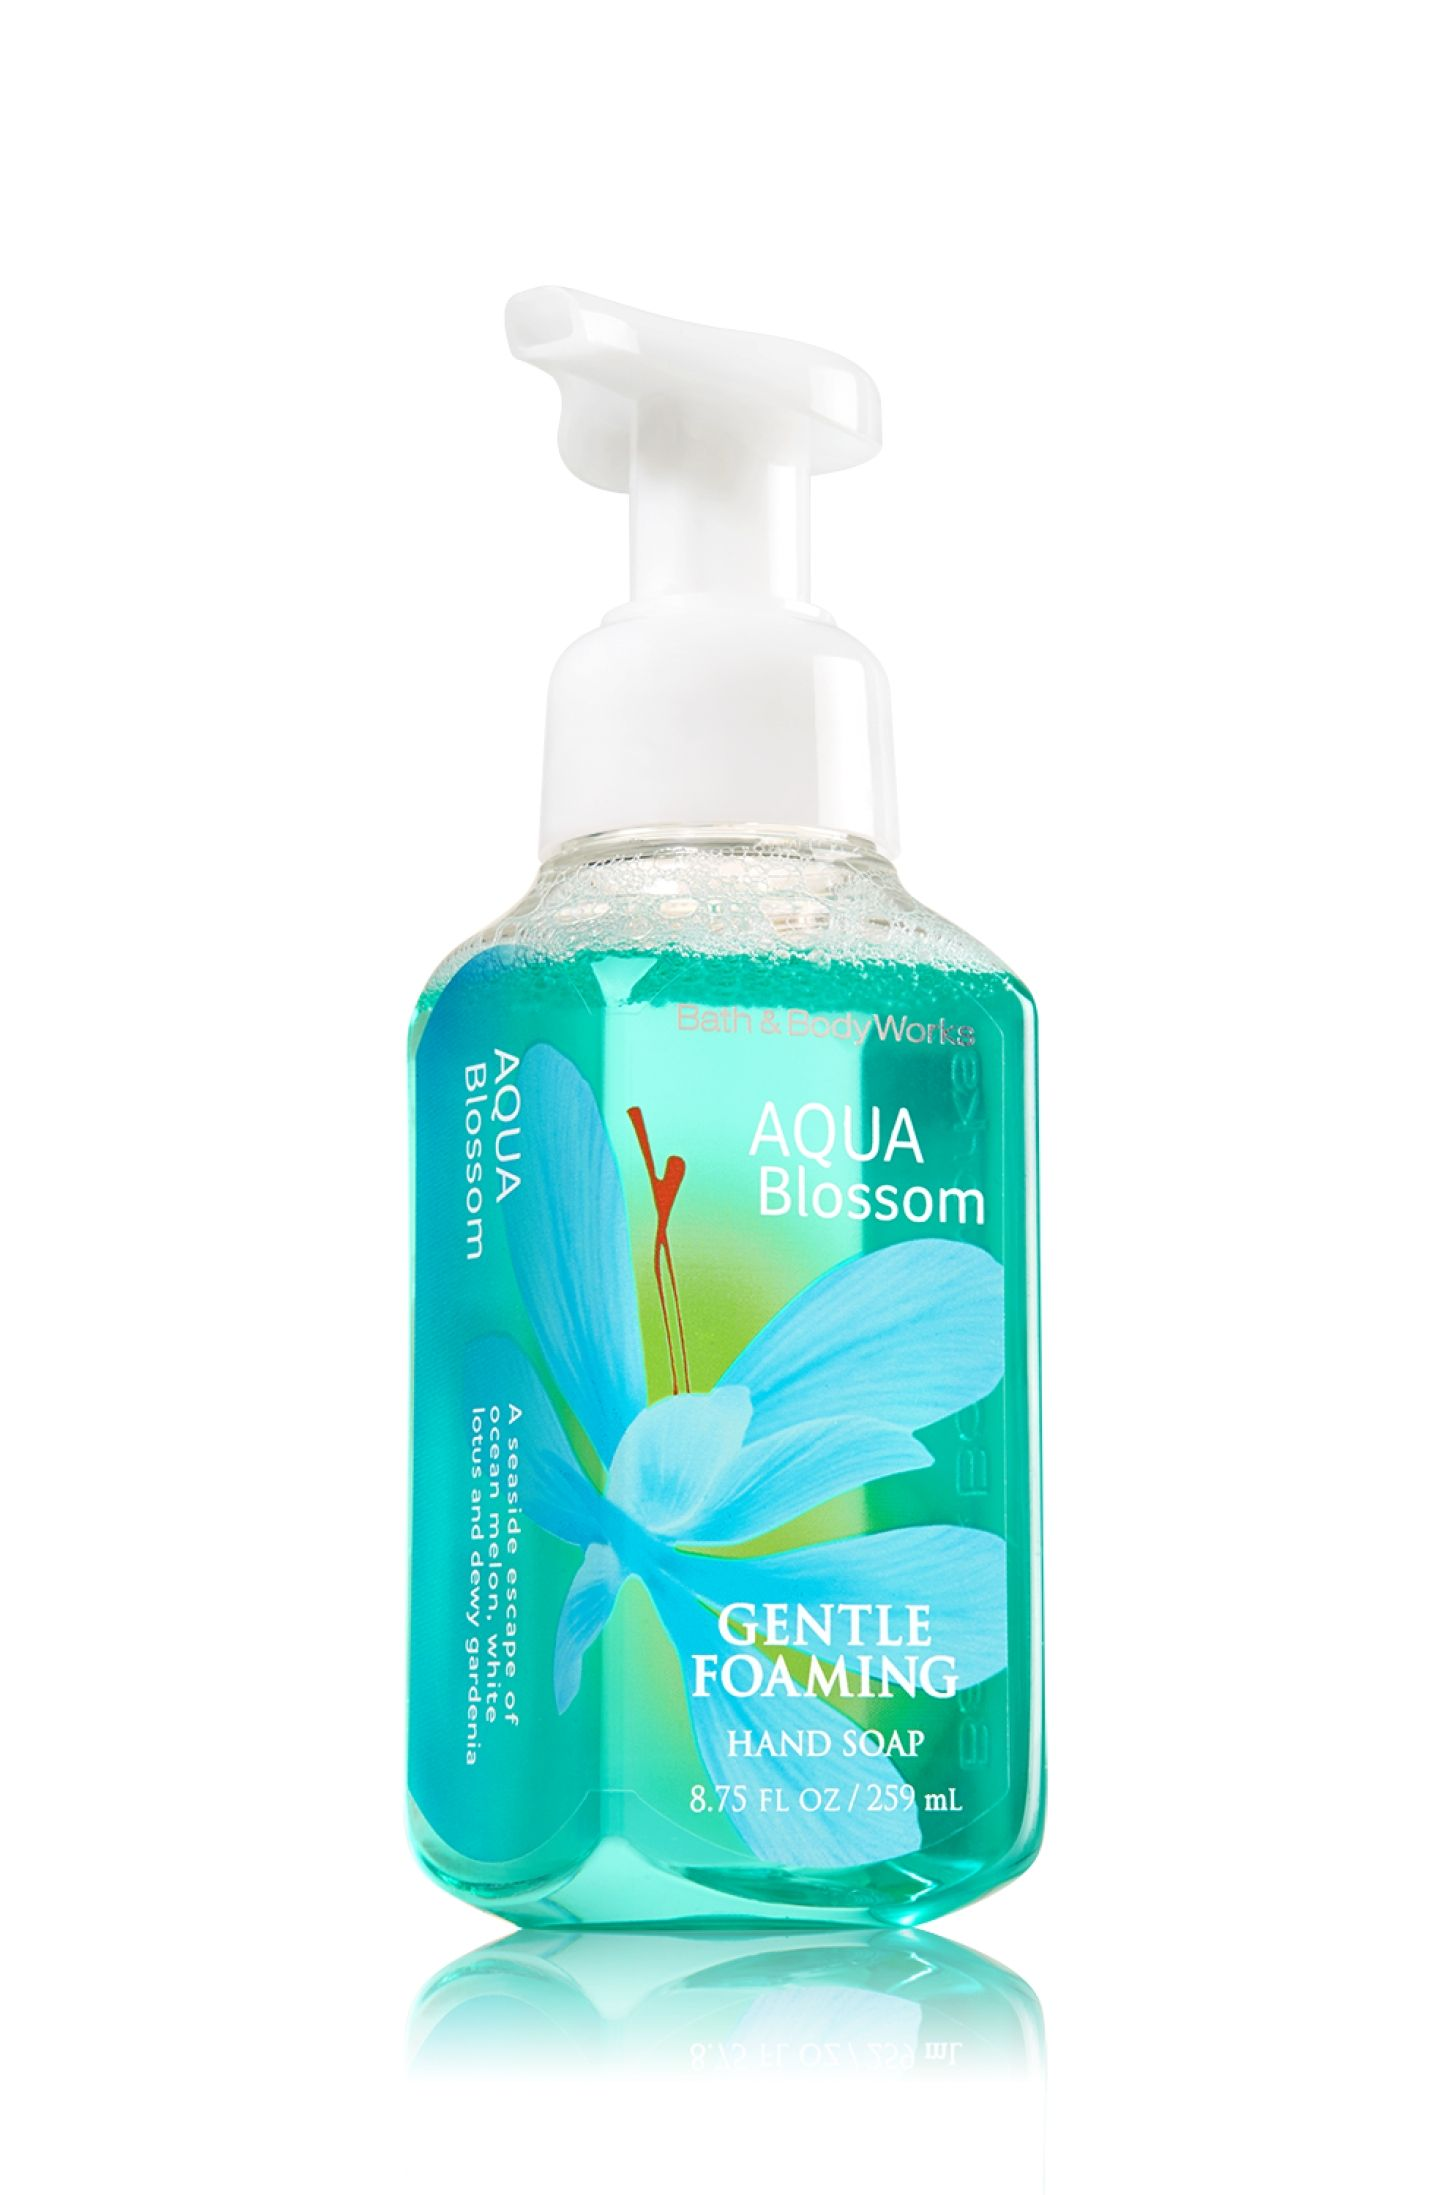 Aqua Blossom Gentle Foaming Hand Soap Soap Sanitizer Bath